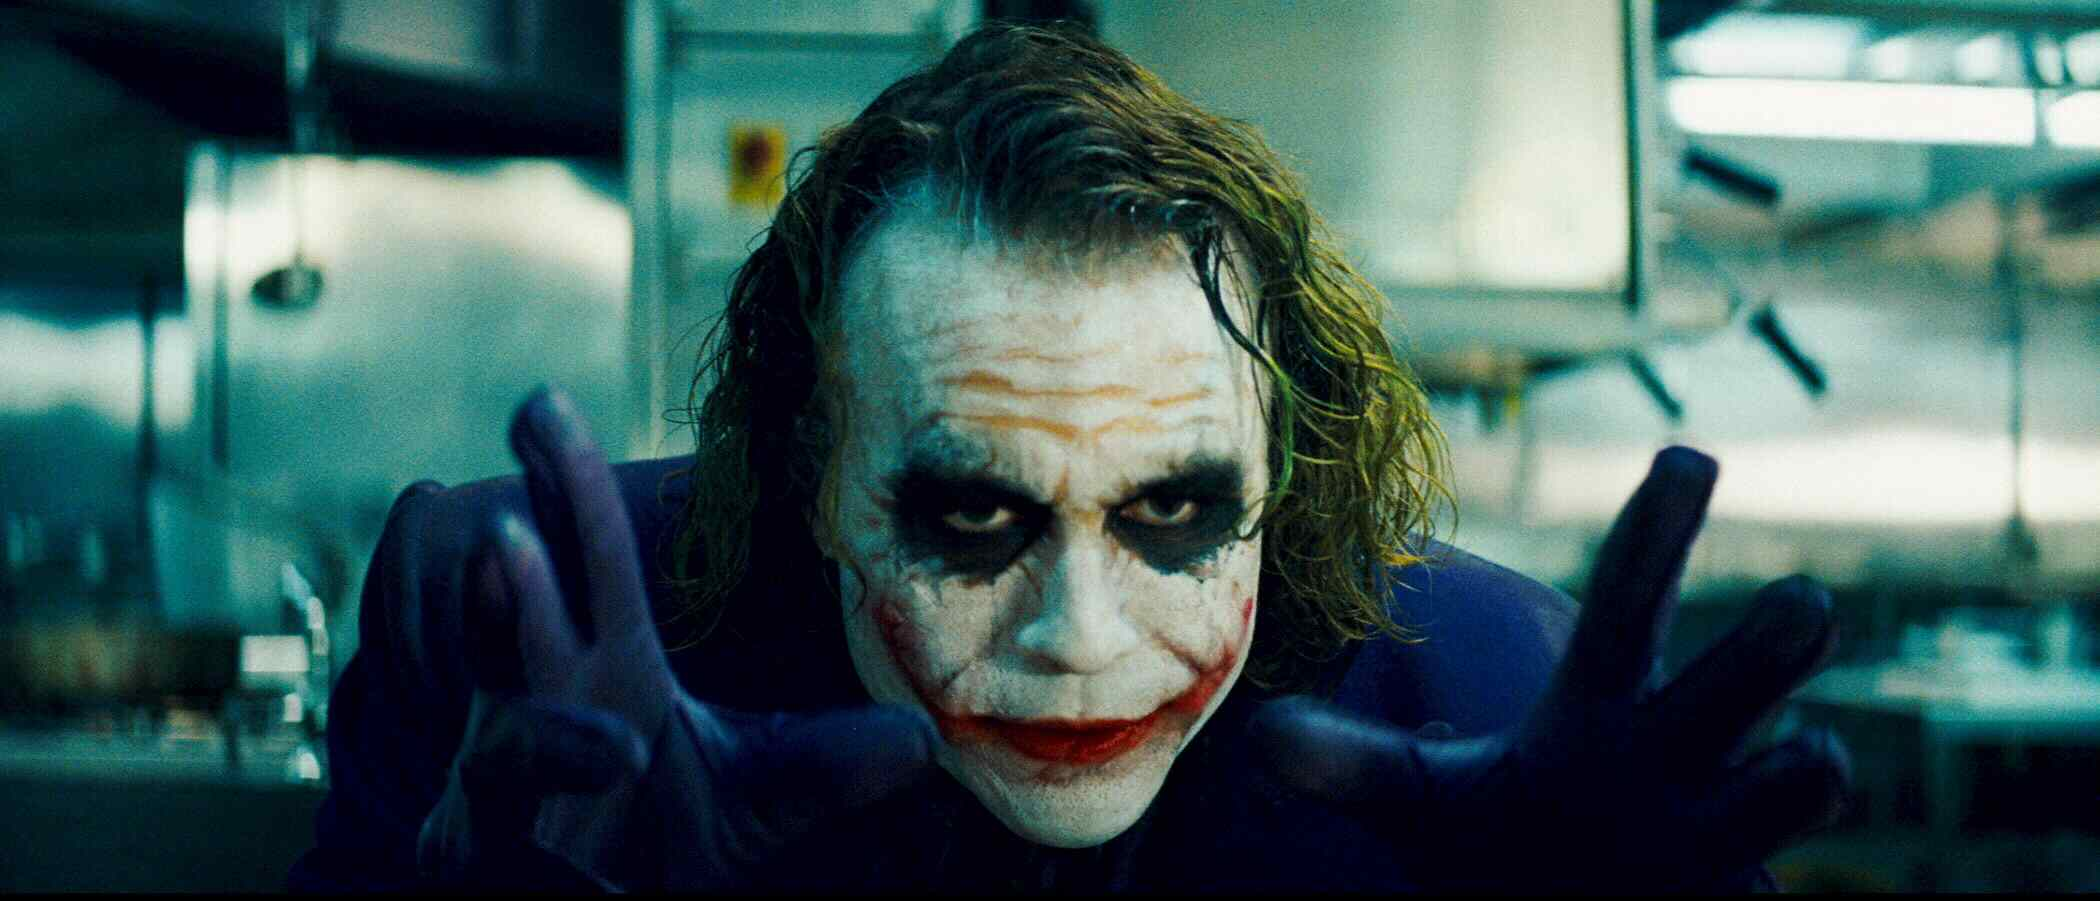 heath ledger as the amazing joker character in batman the dark knight.